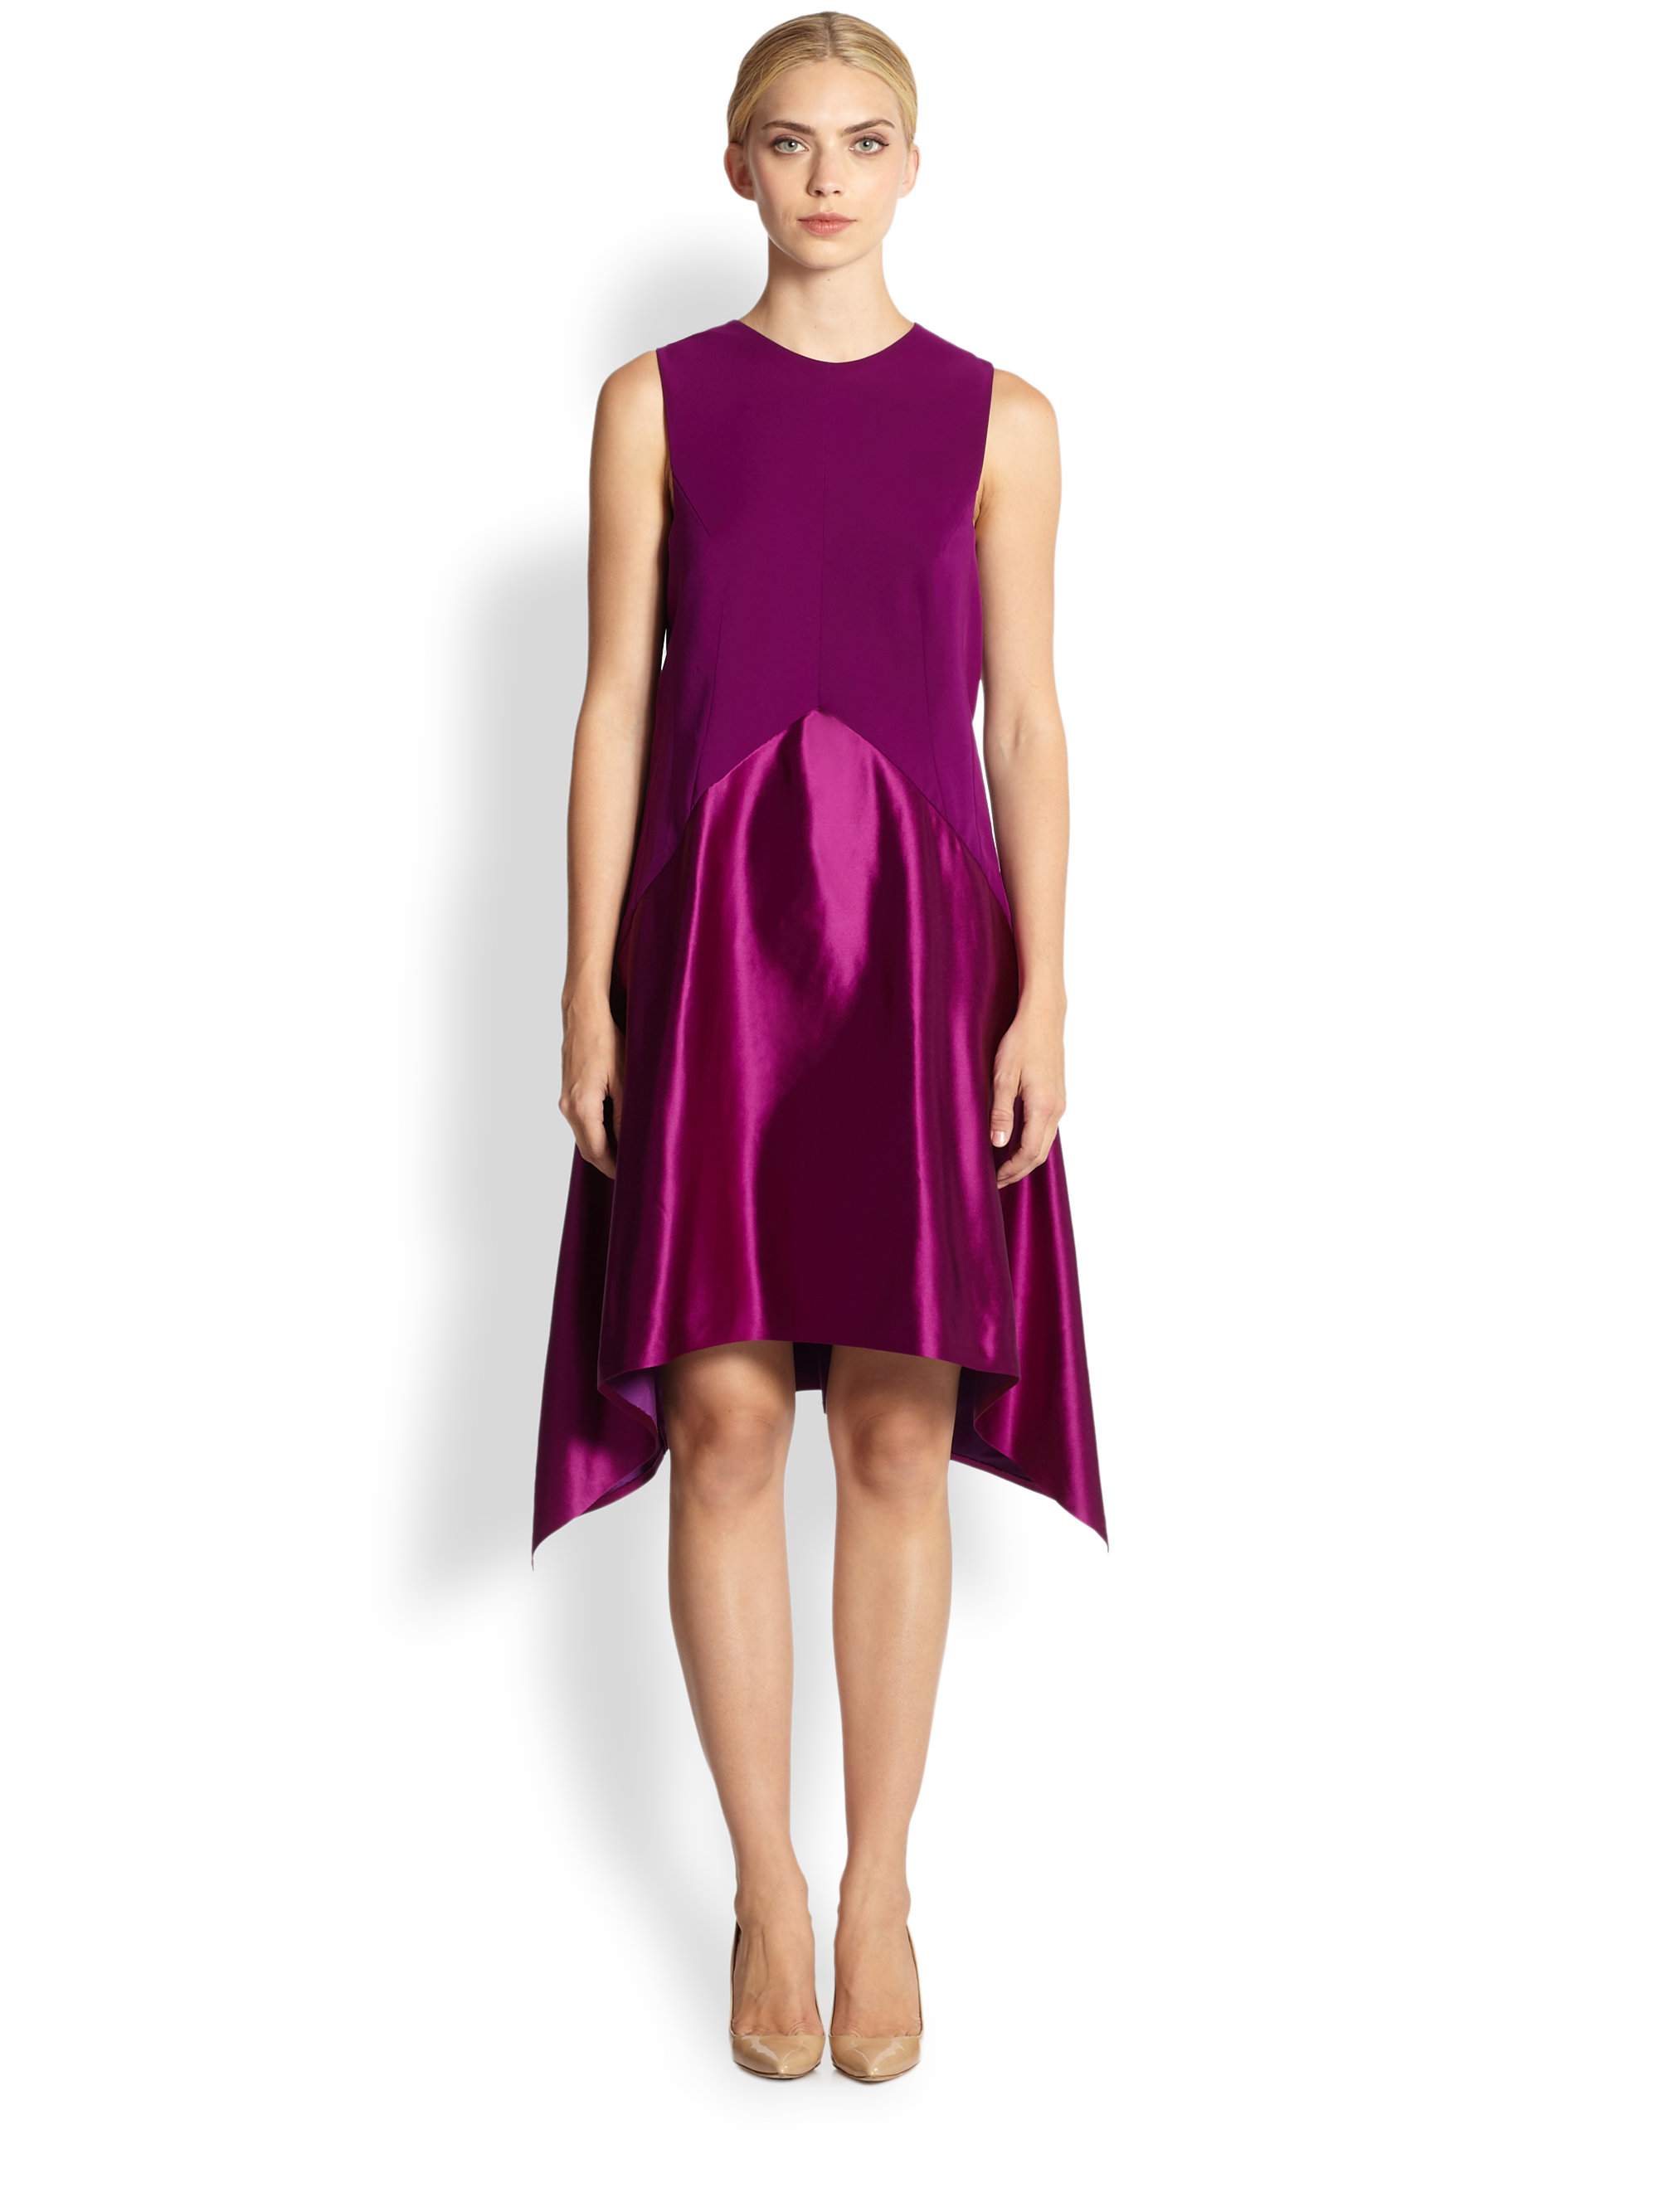 New Arrival For Sale Browse Sale Online DRESSES - Short dresses Narciso Rodriguez Footlocker Finishline Cheap Online 6yeXq